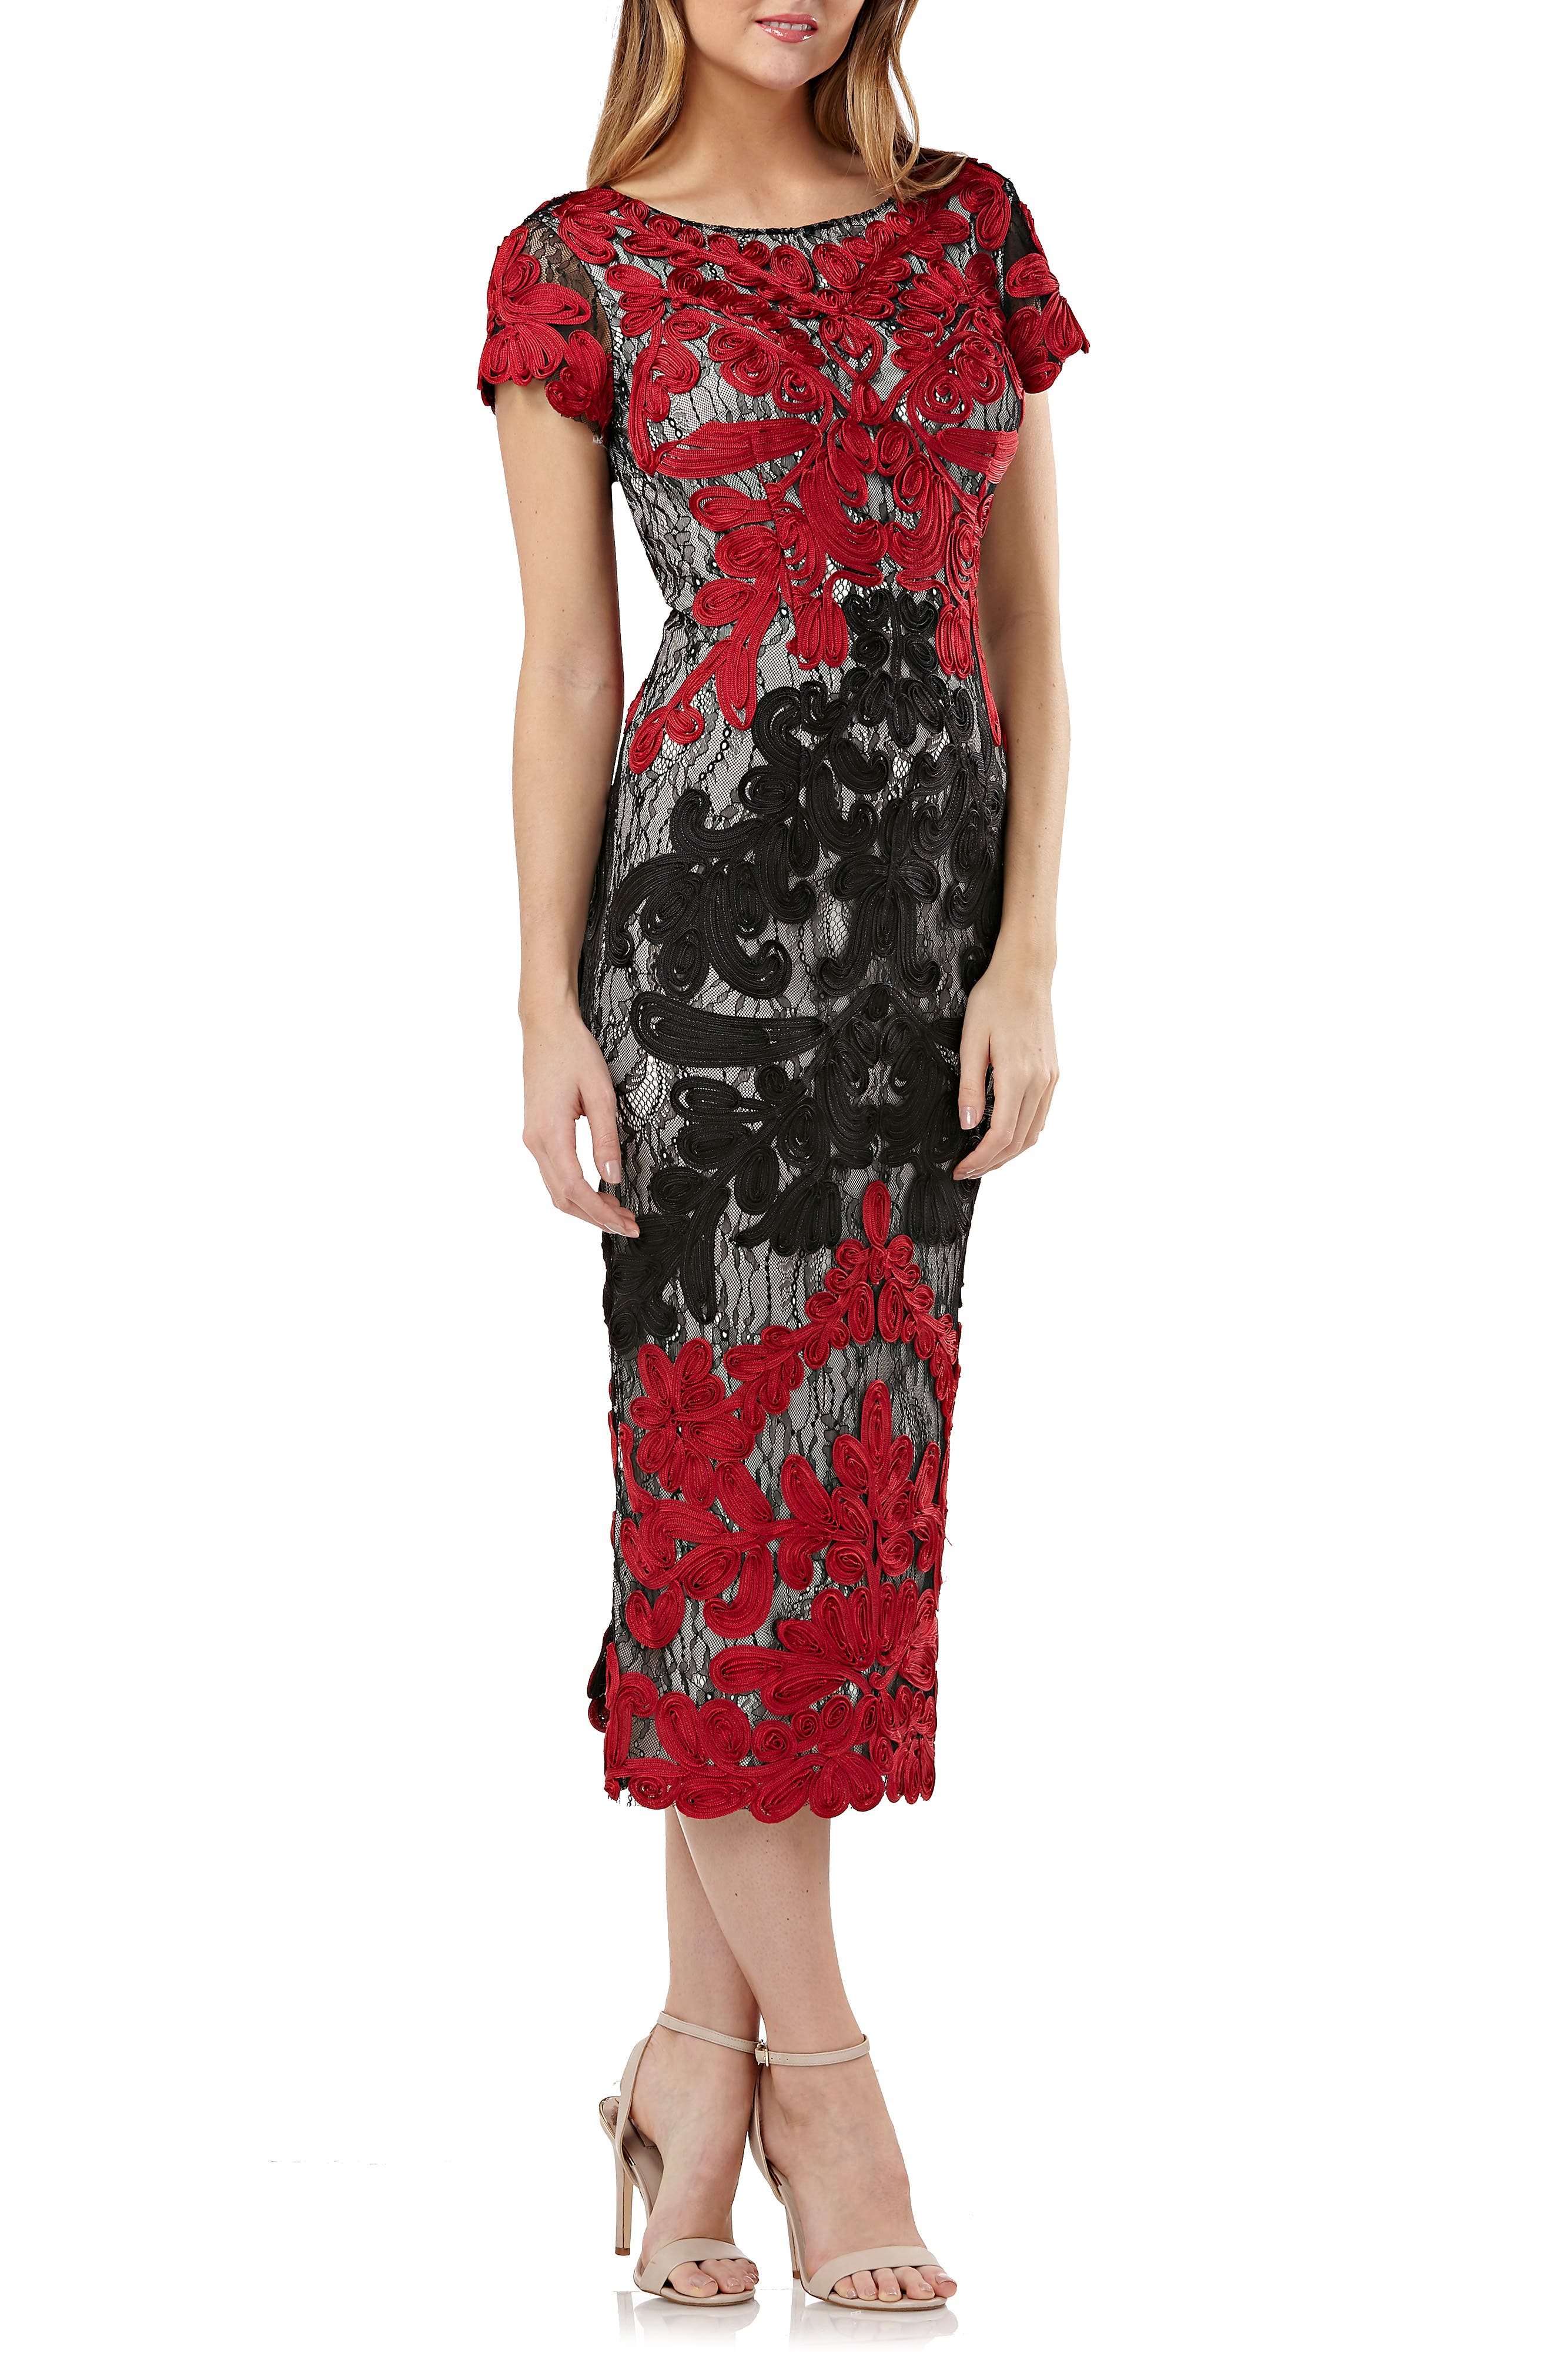 JS COLLECTIONS Boat-Neck Short-Sleeve Two-Tone Embroidered Soutache Midi Dress in Red/Black